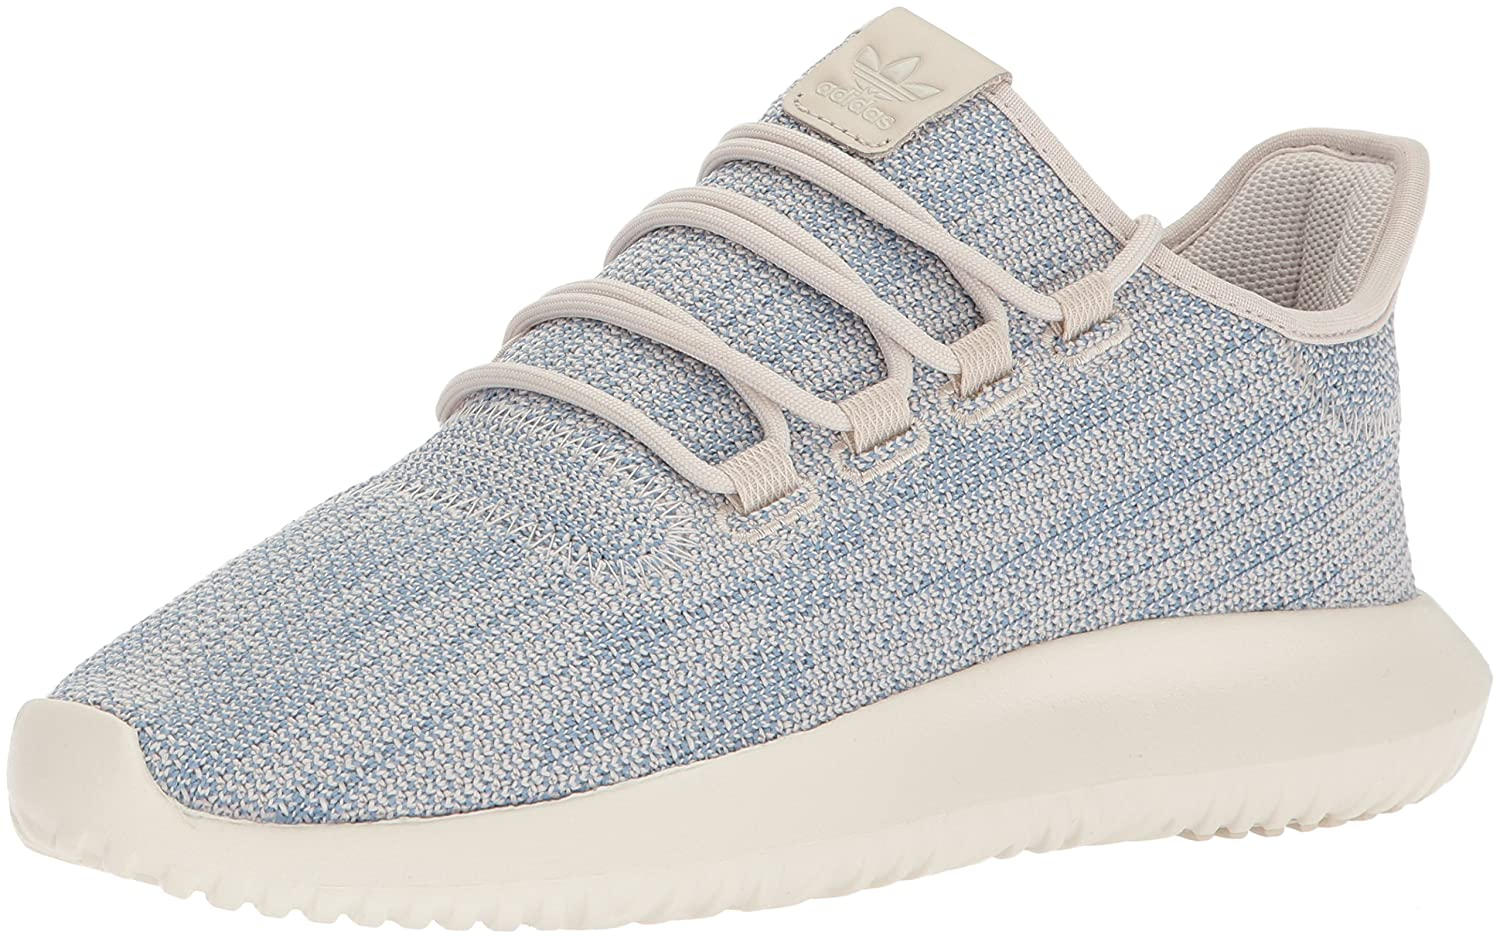 adidas Originals Men's Tubular Shadow Ck Fashion Sneakers B0714BH83S 7.5 D(M) US|Clear Brown/Tactile Blue/Chalk White